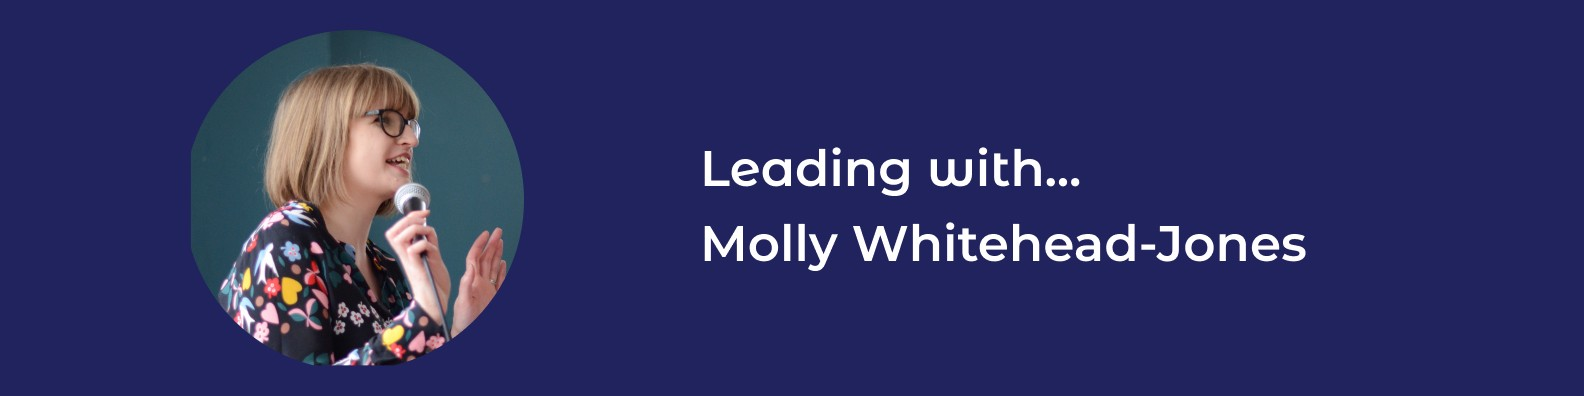 Blue header saying 'Leading with Molly Whitehead-Jones featuring a headshot